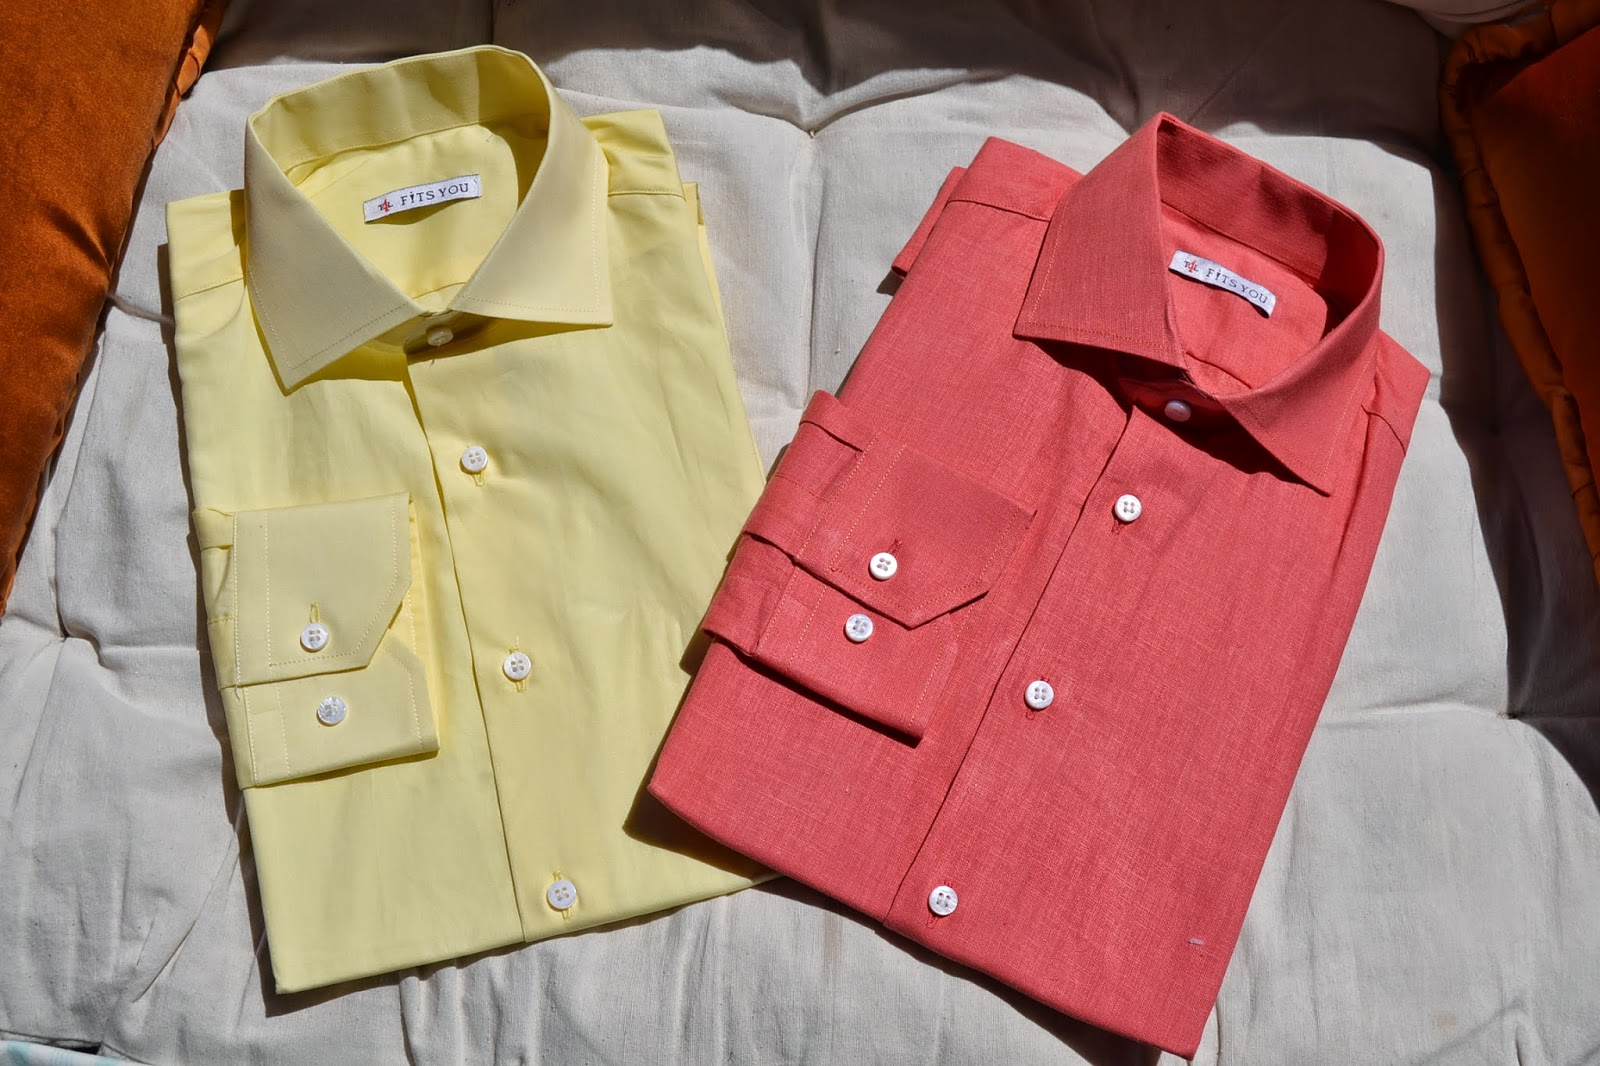 http://www.syriouslyinfashion.com/2014/08/tailor4less-yellow-cotton-coral-linen.html